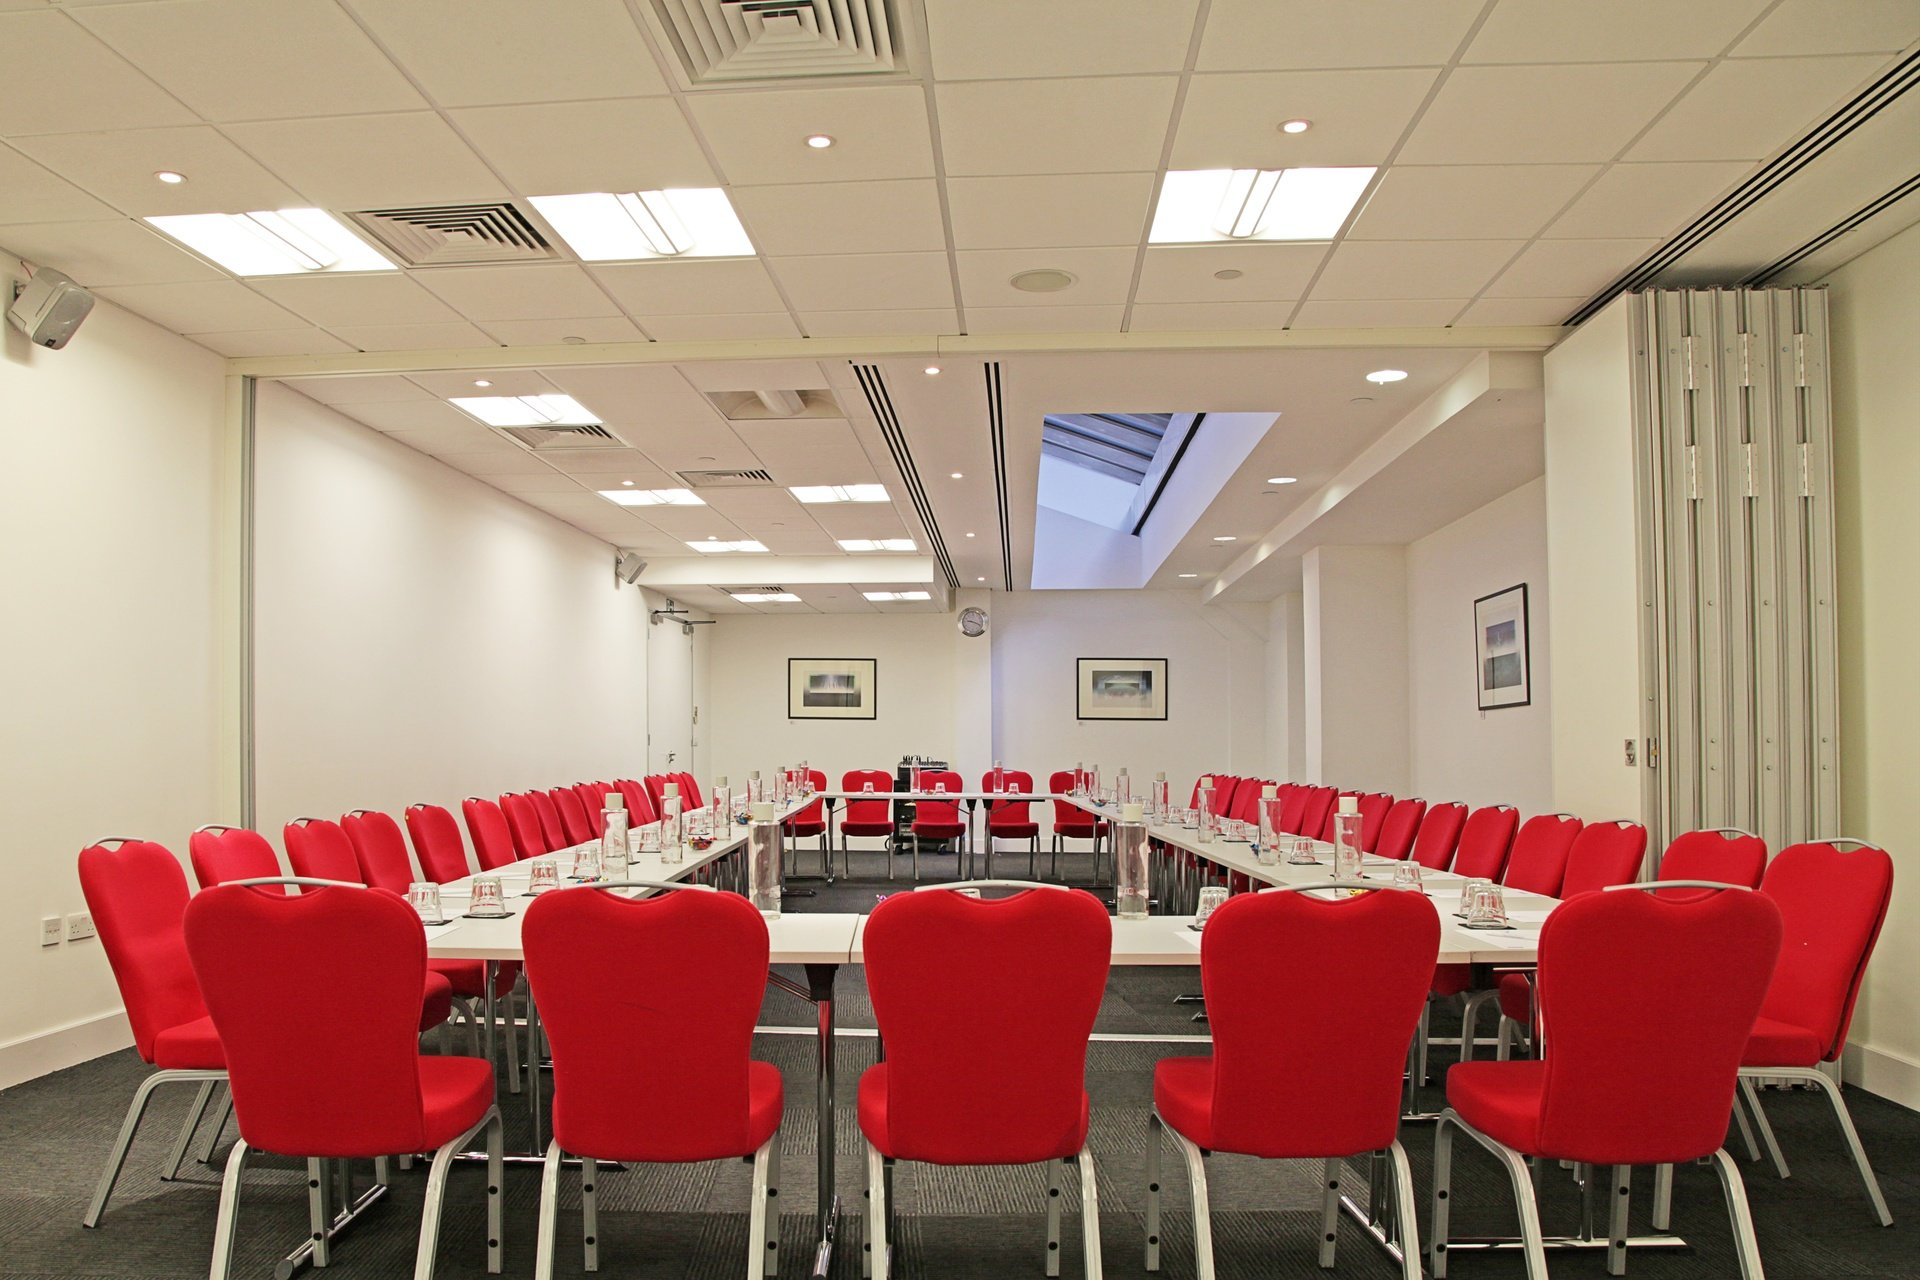 London training rooms Meeting room America Square - Aldgate & Bishopsgate Suite image 0